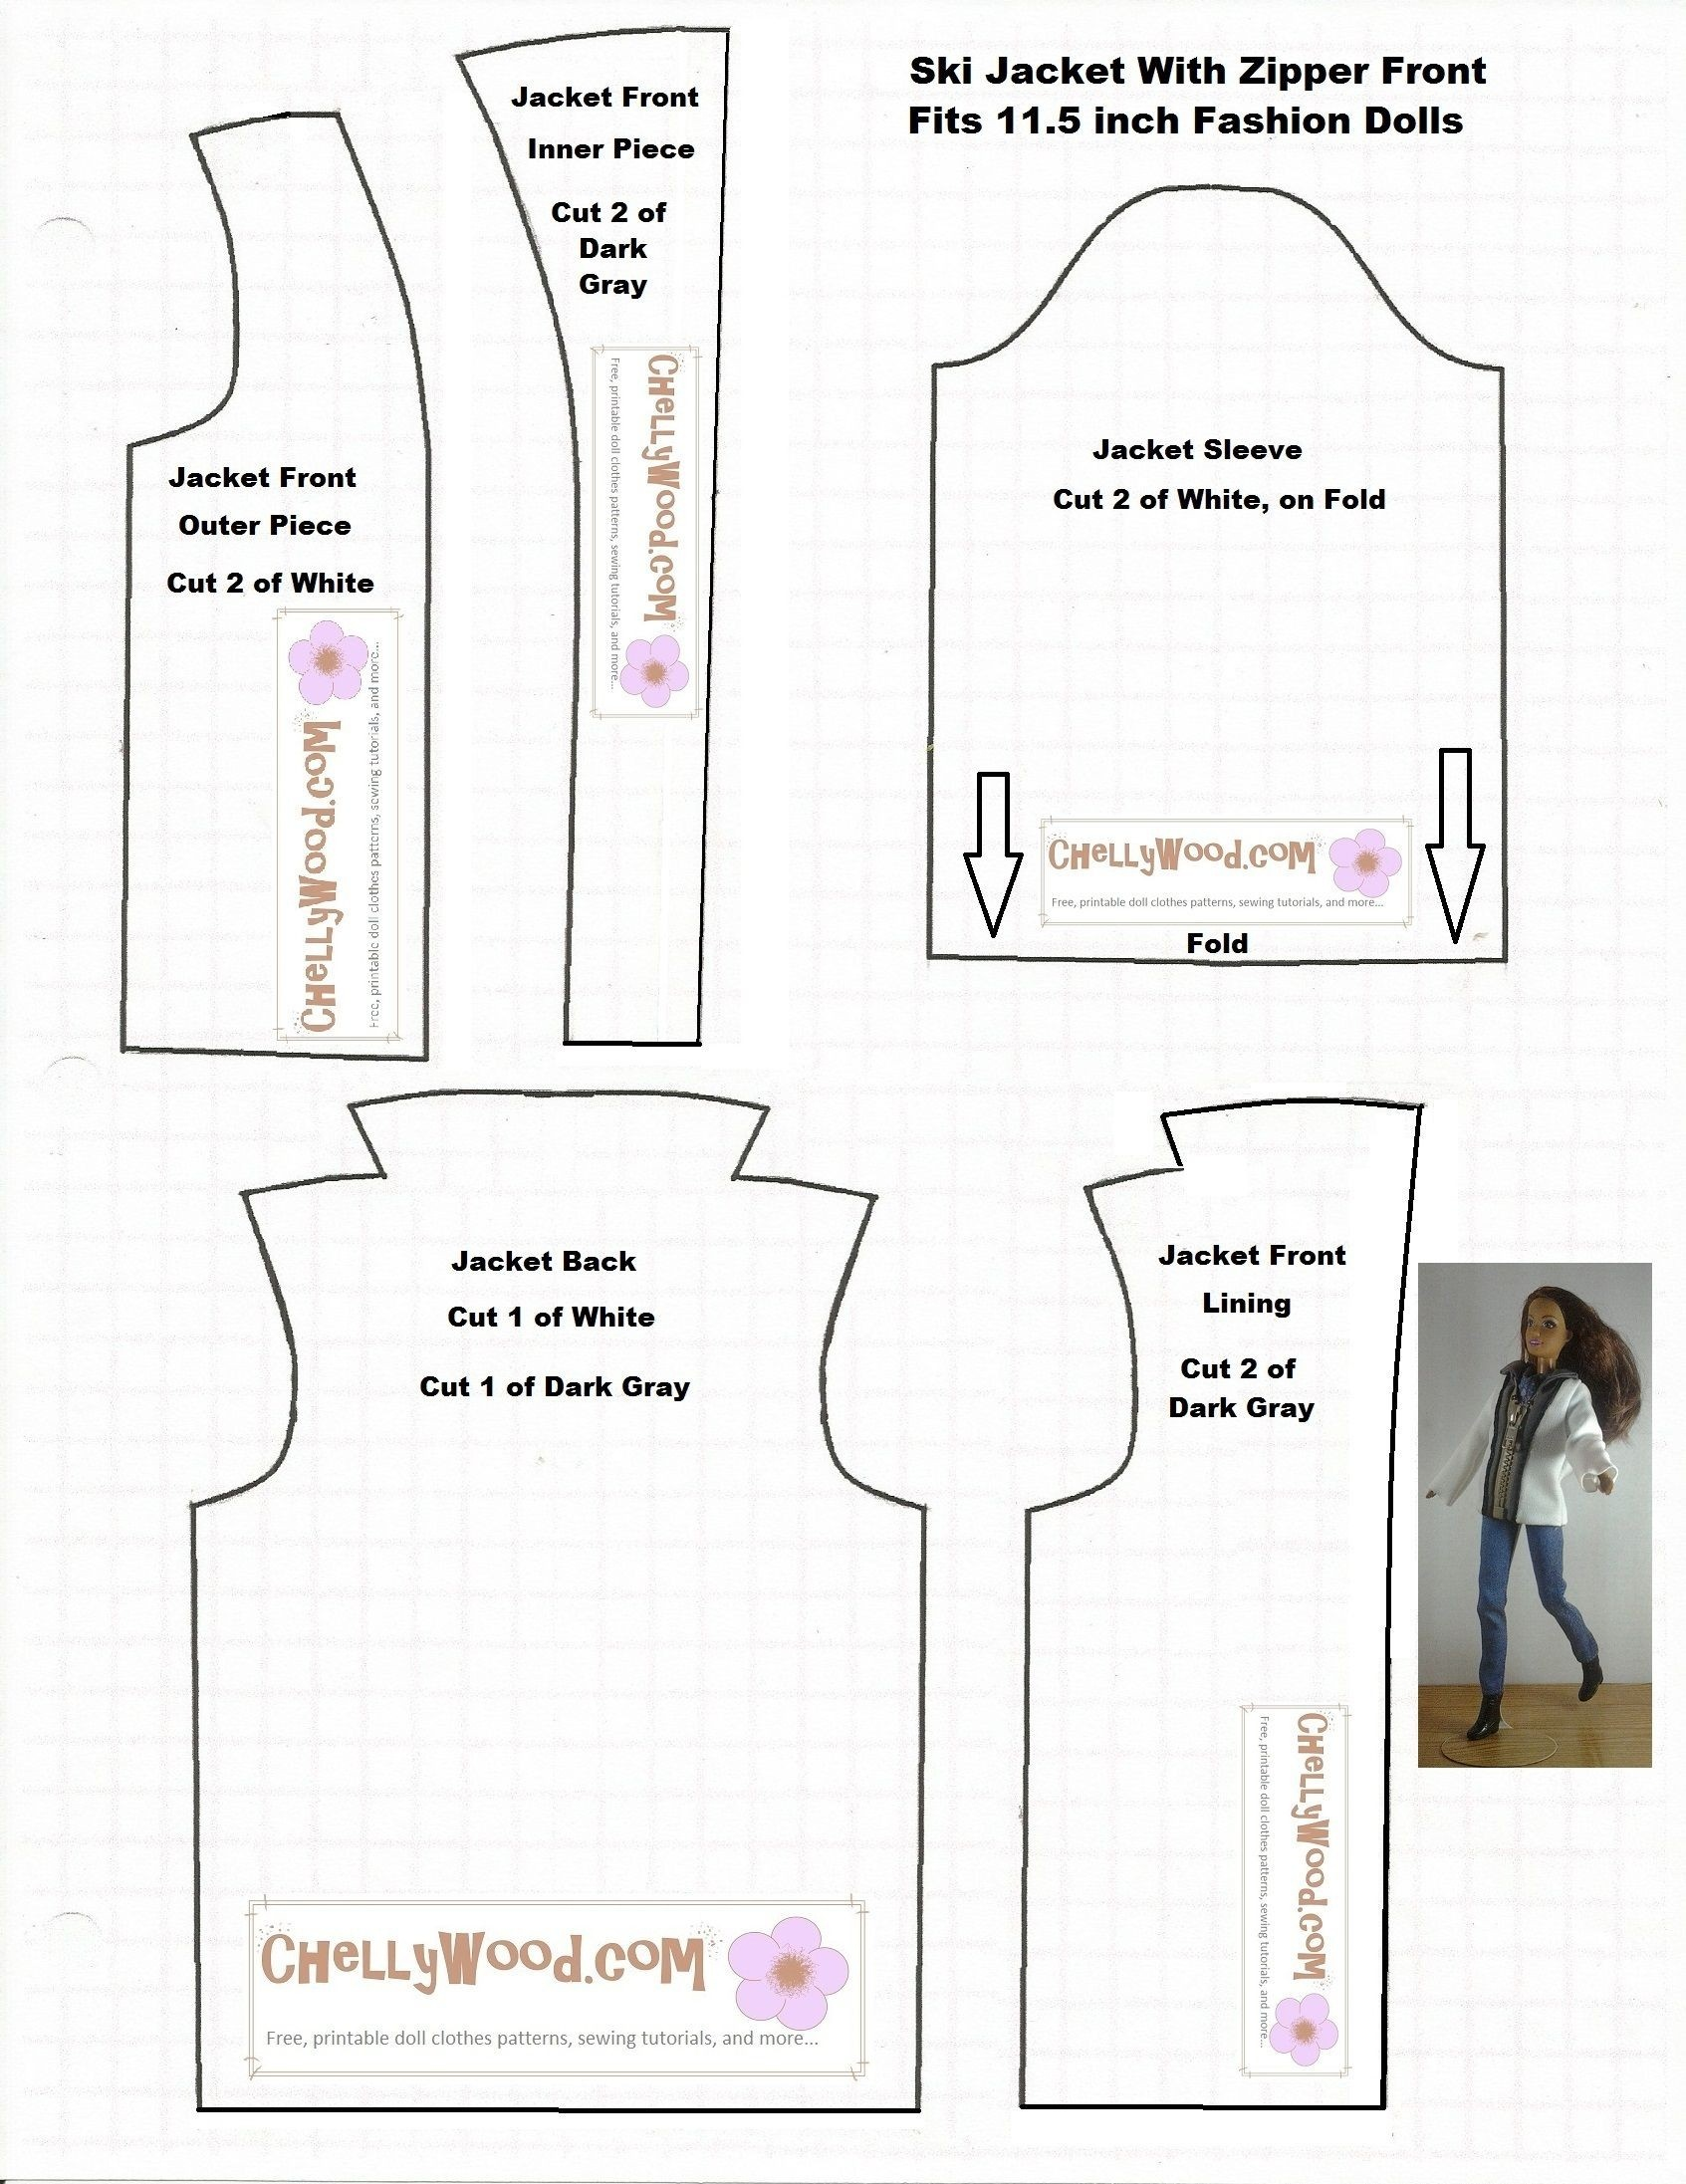 Free Printable Doll Clothes Patterns For 18 Inch Dolls Unique Doll - Free Printable Doll Clothes Patterns For 18 Inch Dolls